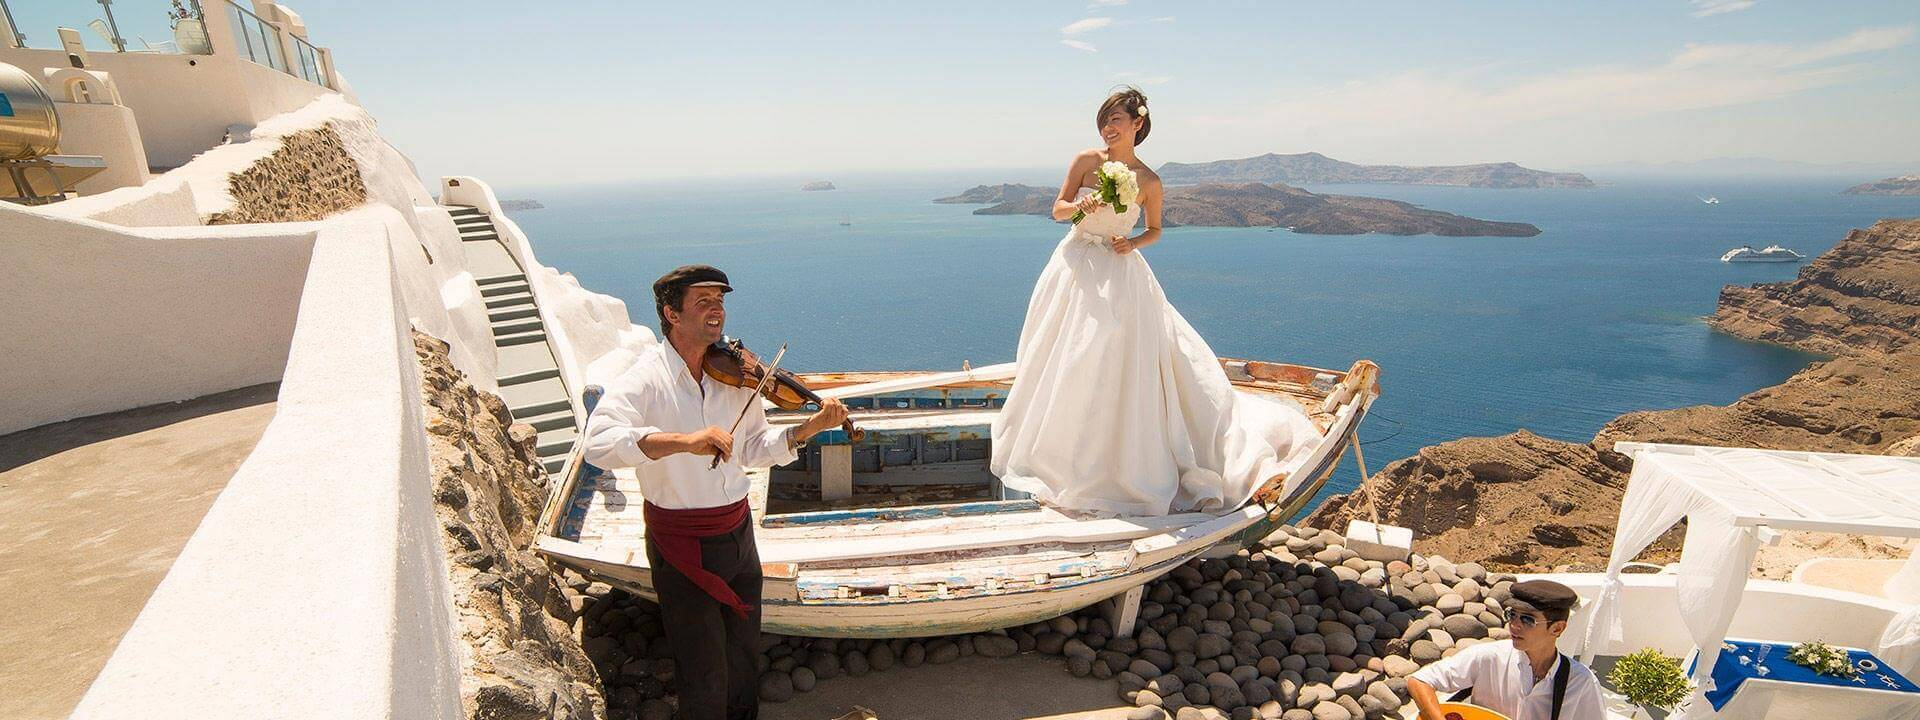 santorini-wedding-villa-eirini-01